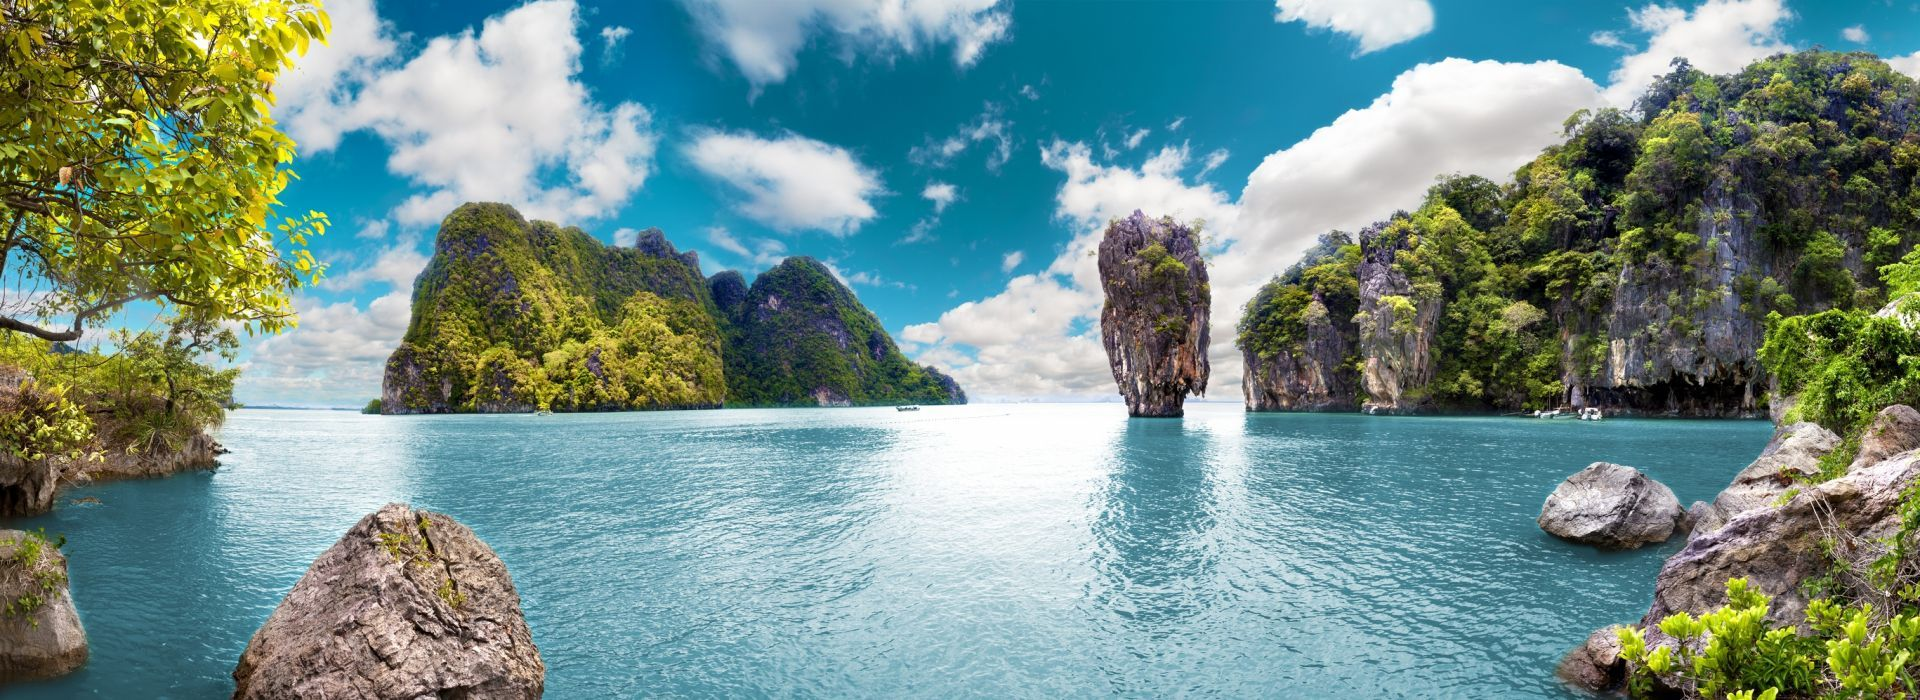 Art and architecture Tours in Thailand